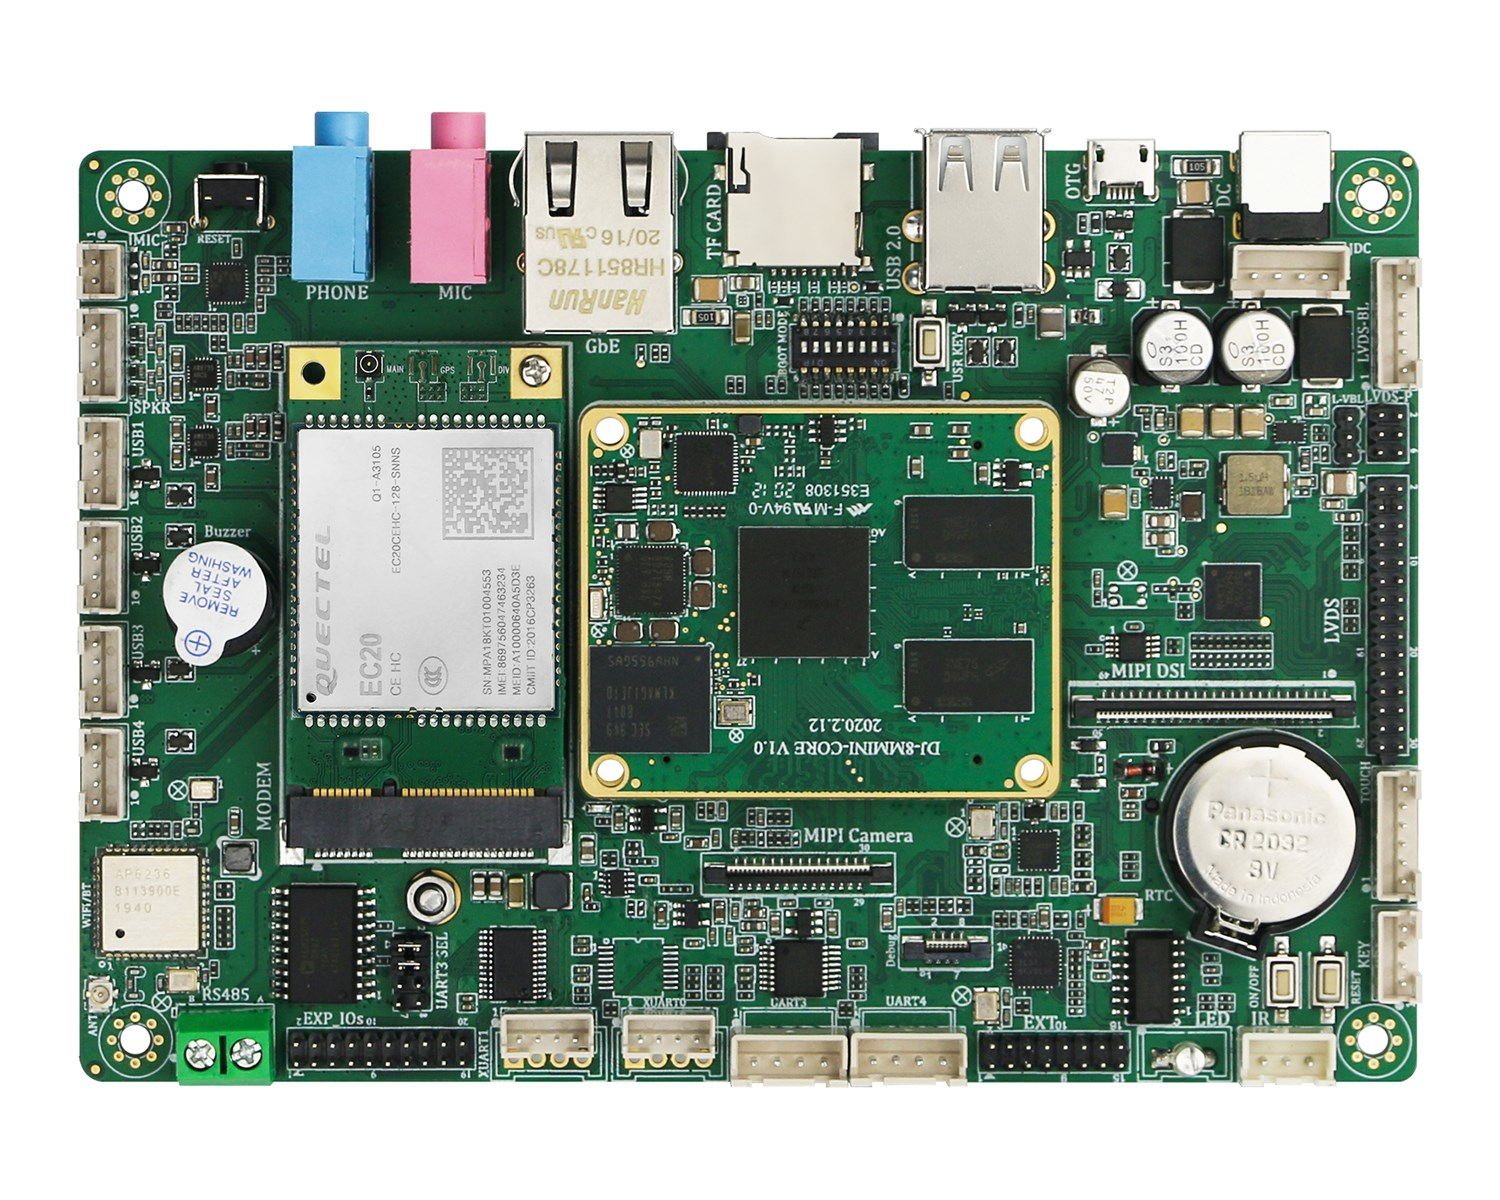 NXP iMX8M Industrial Motherboard onboard 2GB DDR4 16GB eMMC with 6USB 5UART 15GPIO and WiFiBT